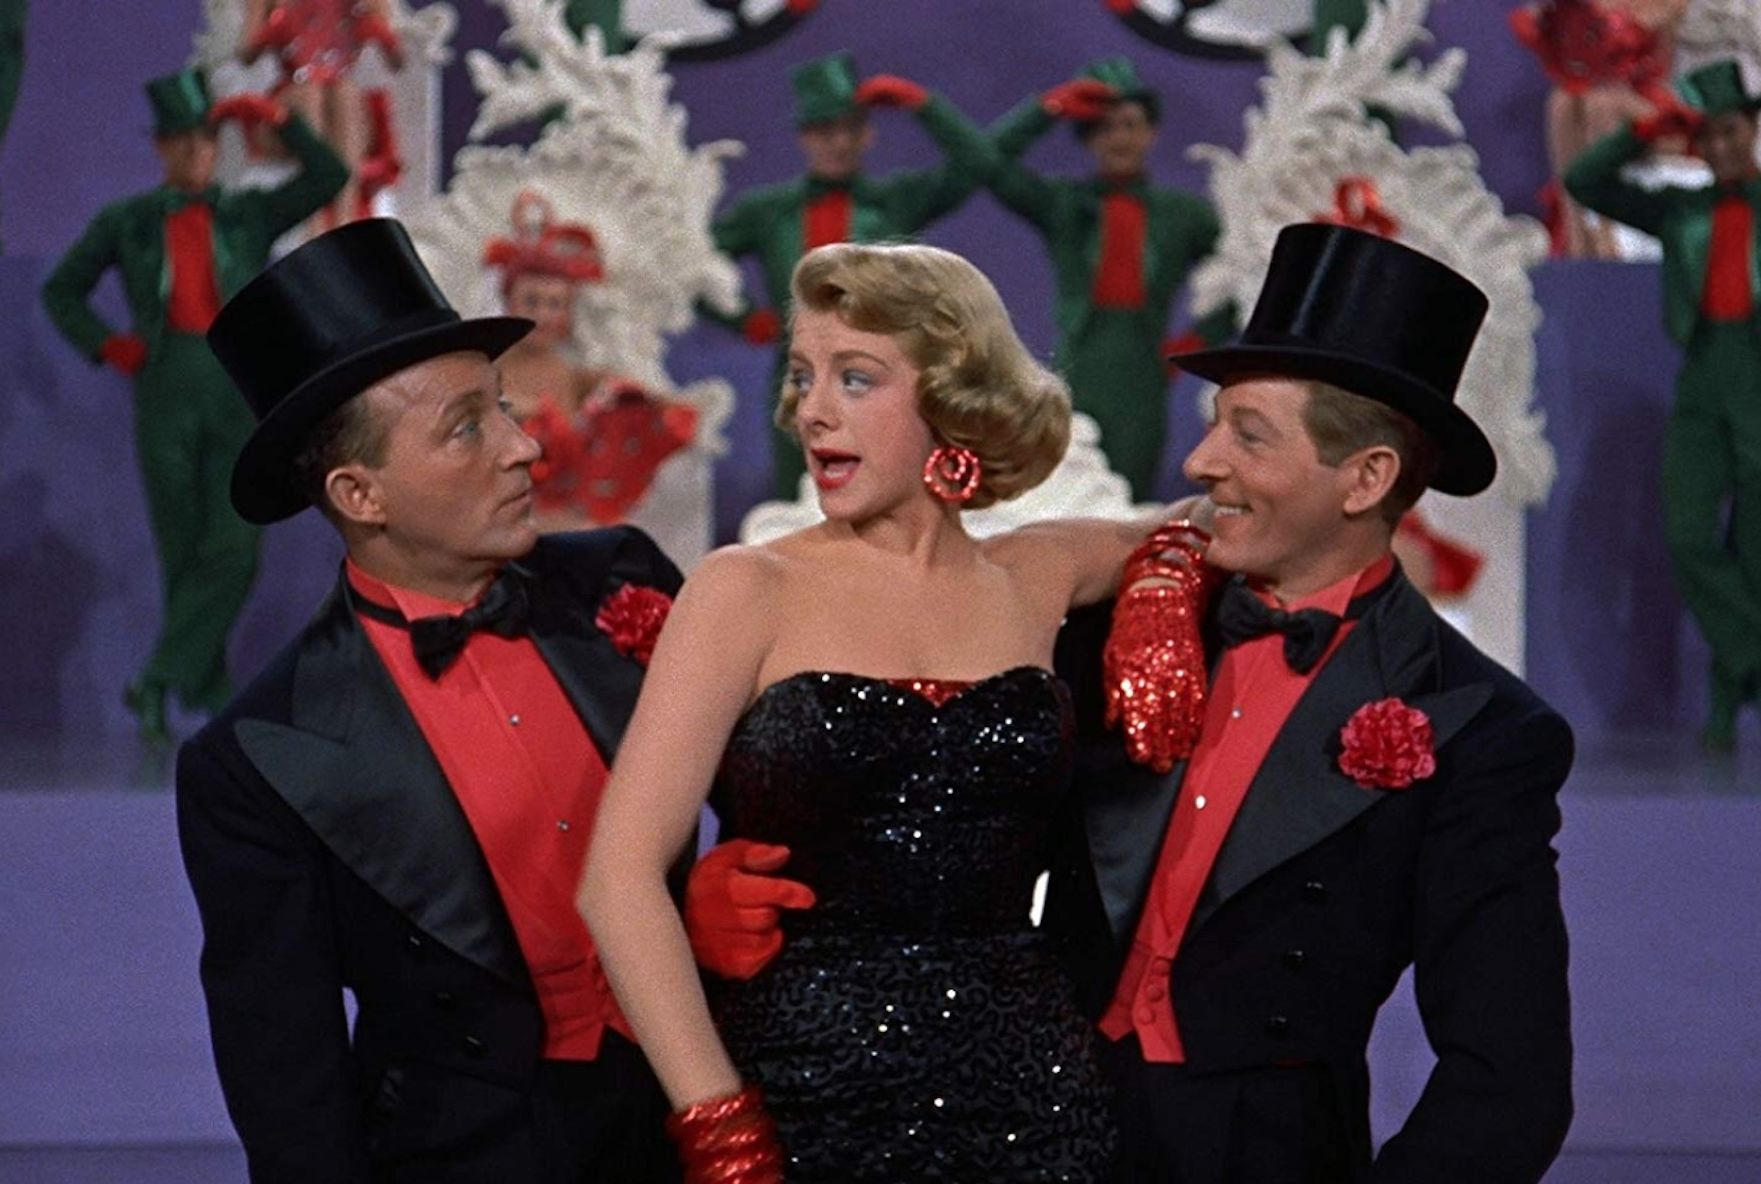 Festive Facts About 'White Christmas' Movie | Mental Floss